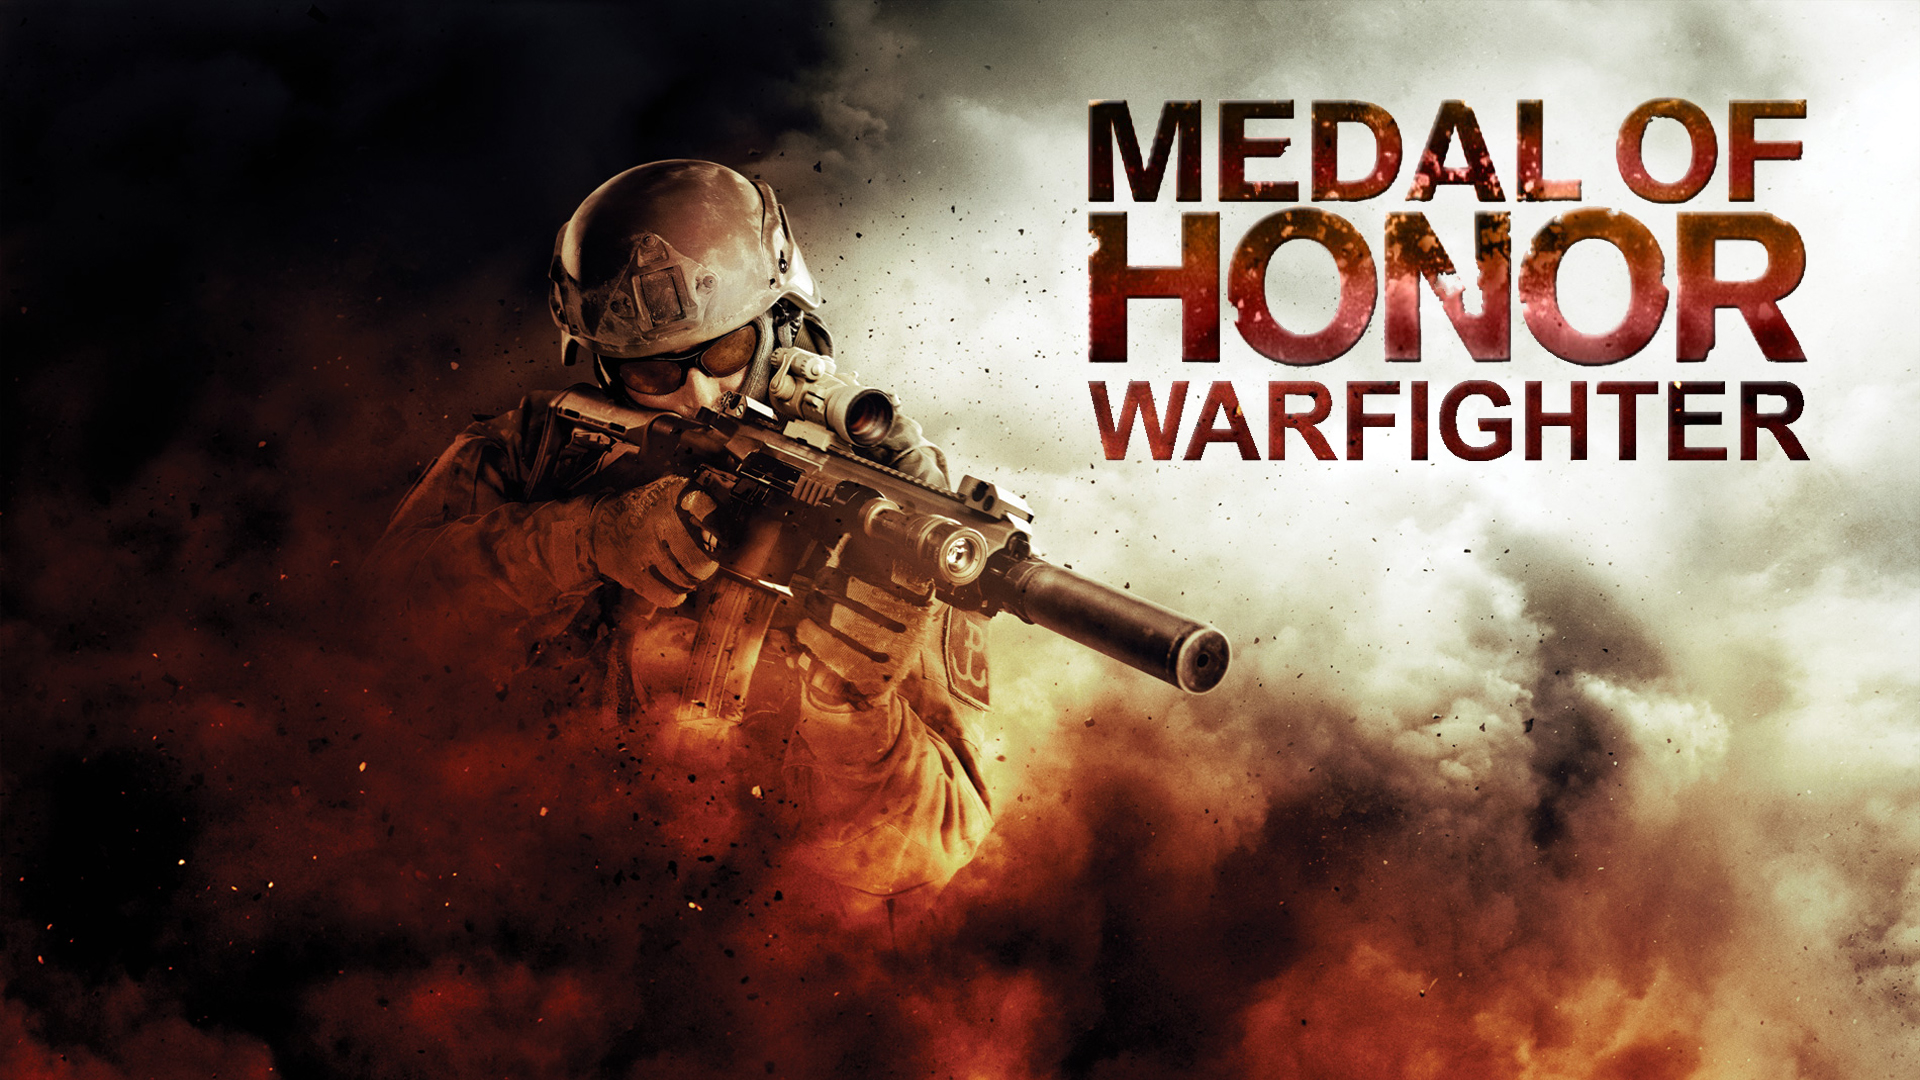 Medal of Honor Warfighter Review: There Is No Honor - The